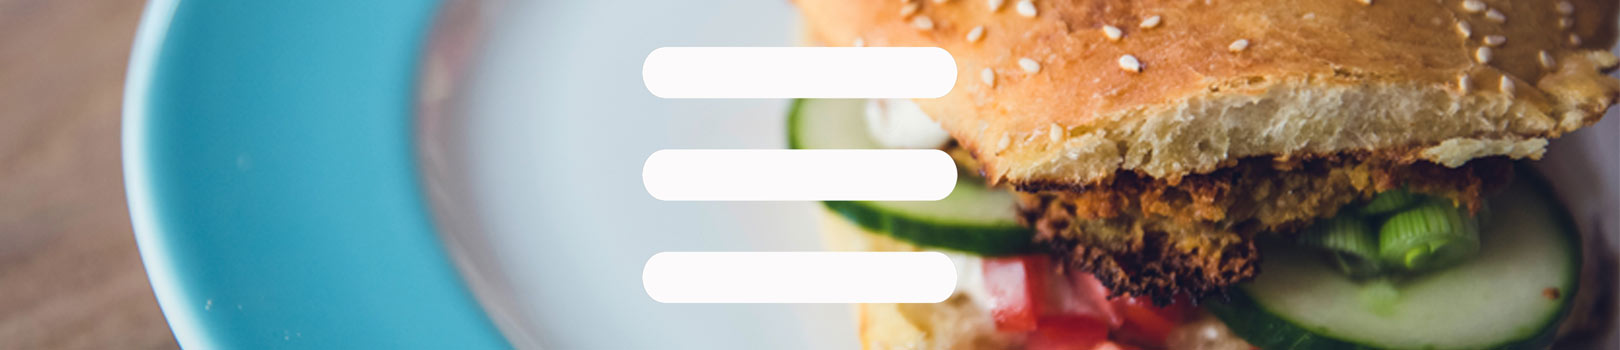 hamburger menu icon